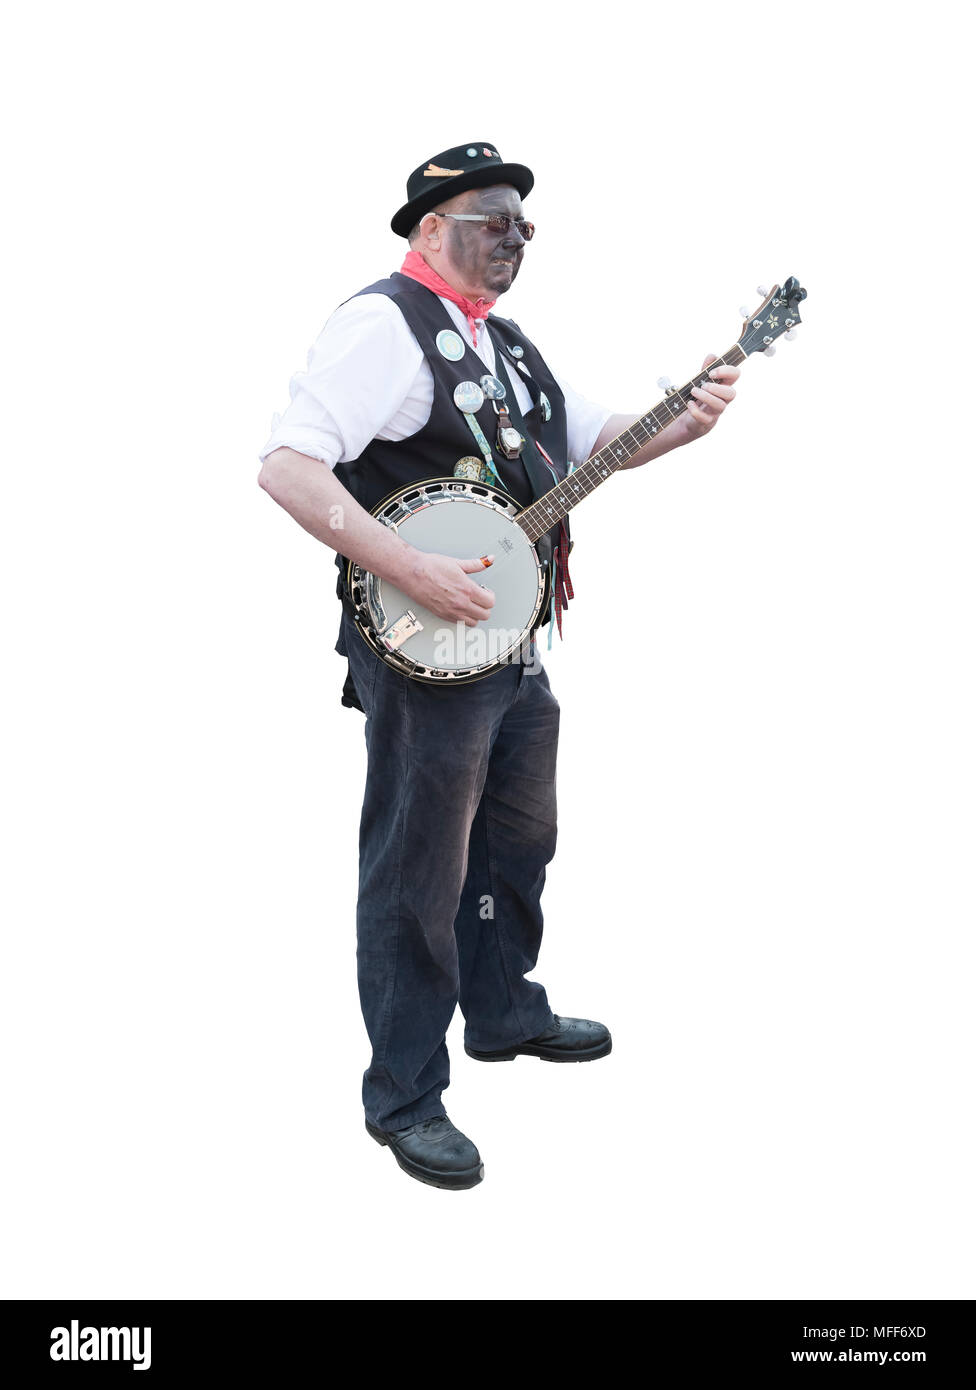 Cut out image of a banjo player - Stock Image